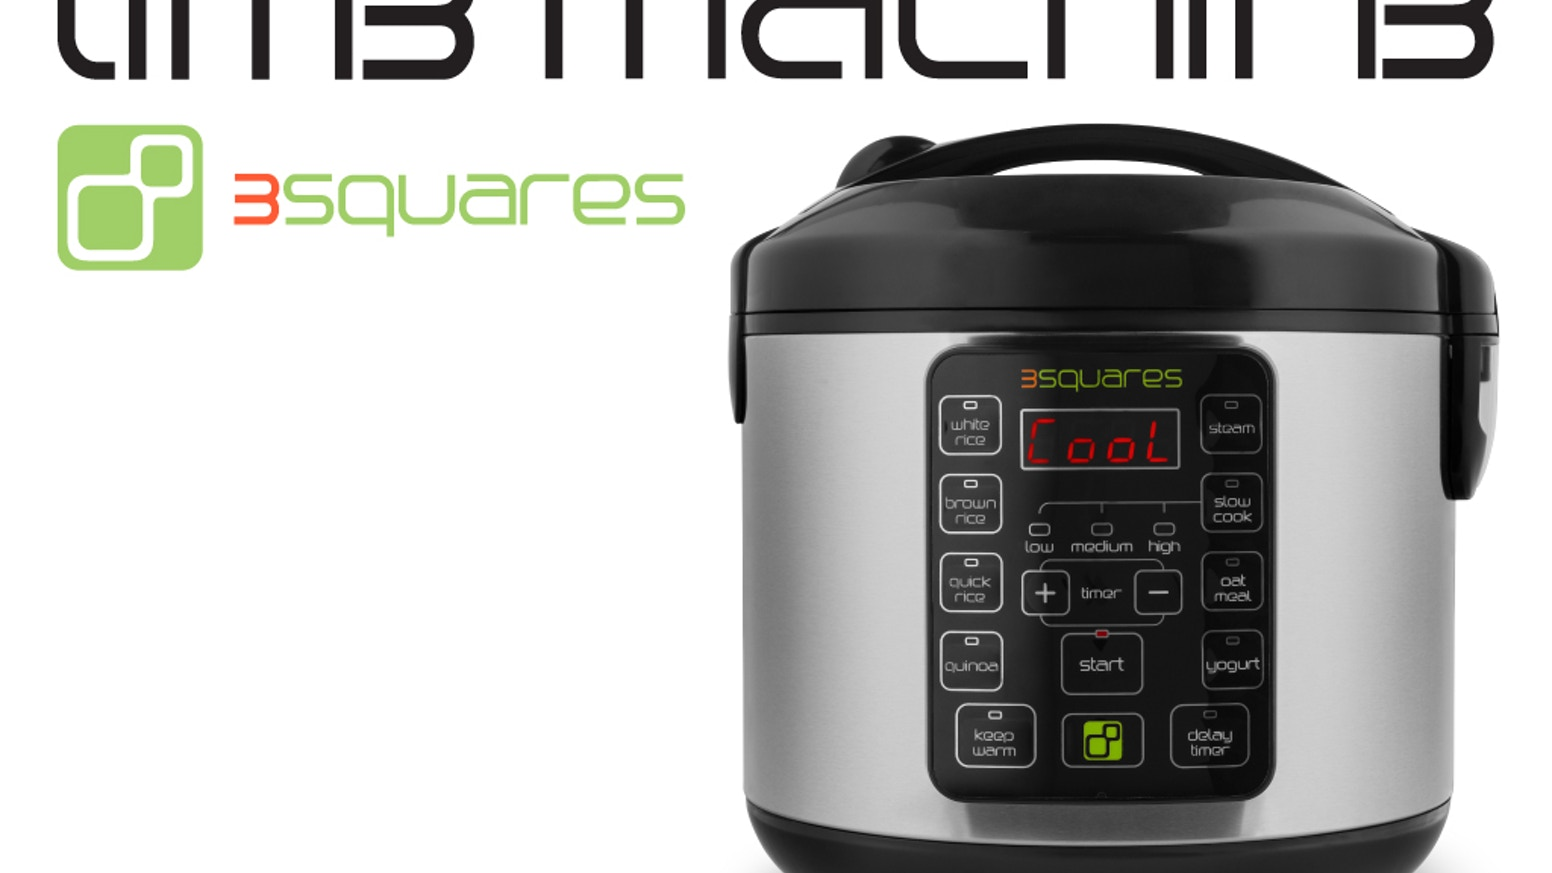 Not a time machine, it's a TIM3 MACHIN3: saving you time in the kitchen! Makes rice, quinoa, yogurt & oatmeal. Slow cooks & steams too.